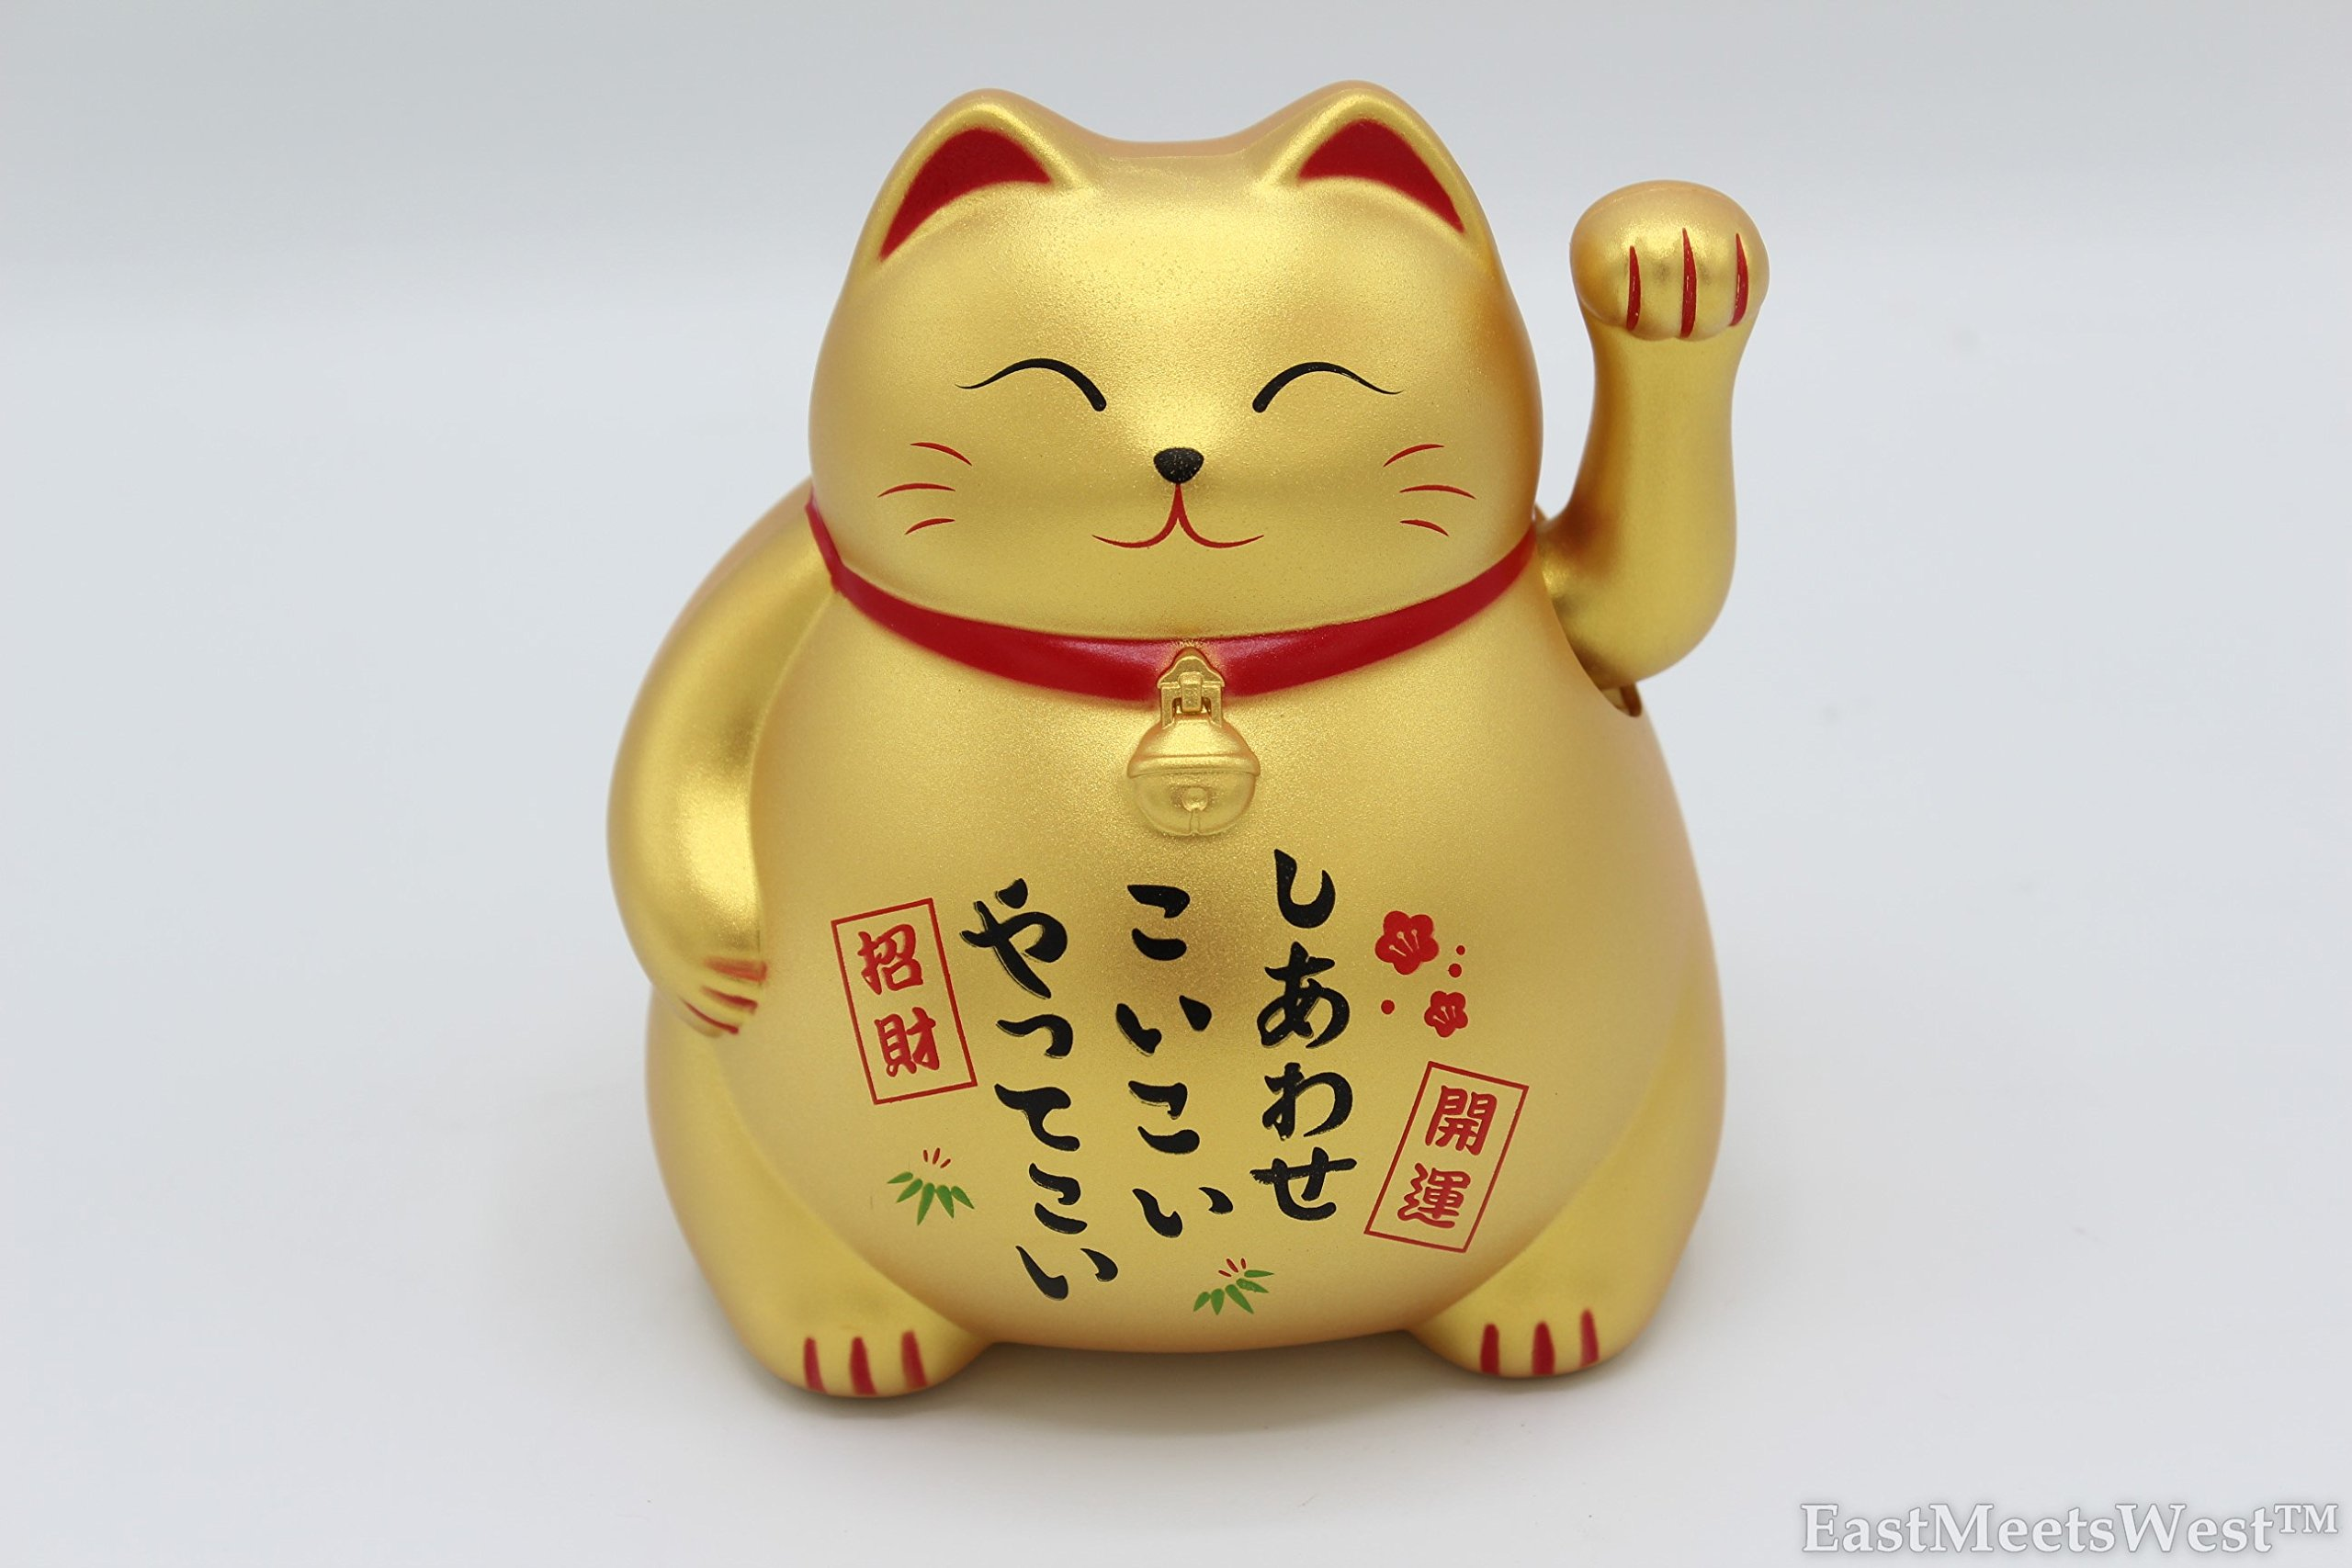 New Edition Japanese Feng Shui Lucky Maneki Neko Waving Paw Beckon Cat Battery Operated (Gold) by LuckyGifts